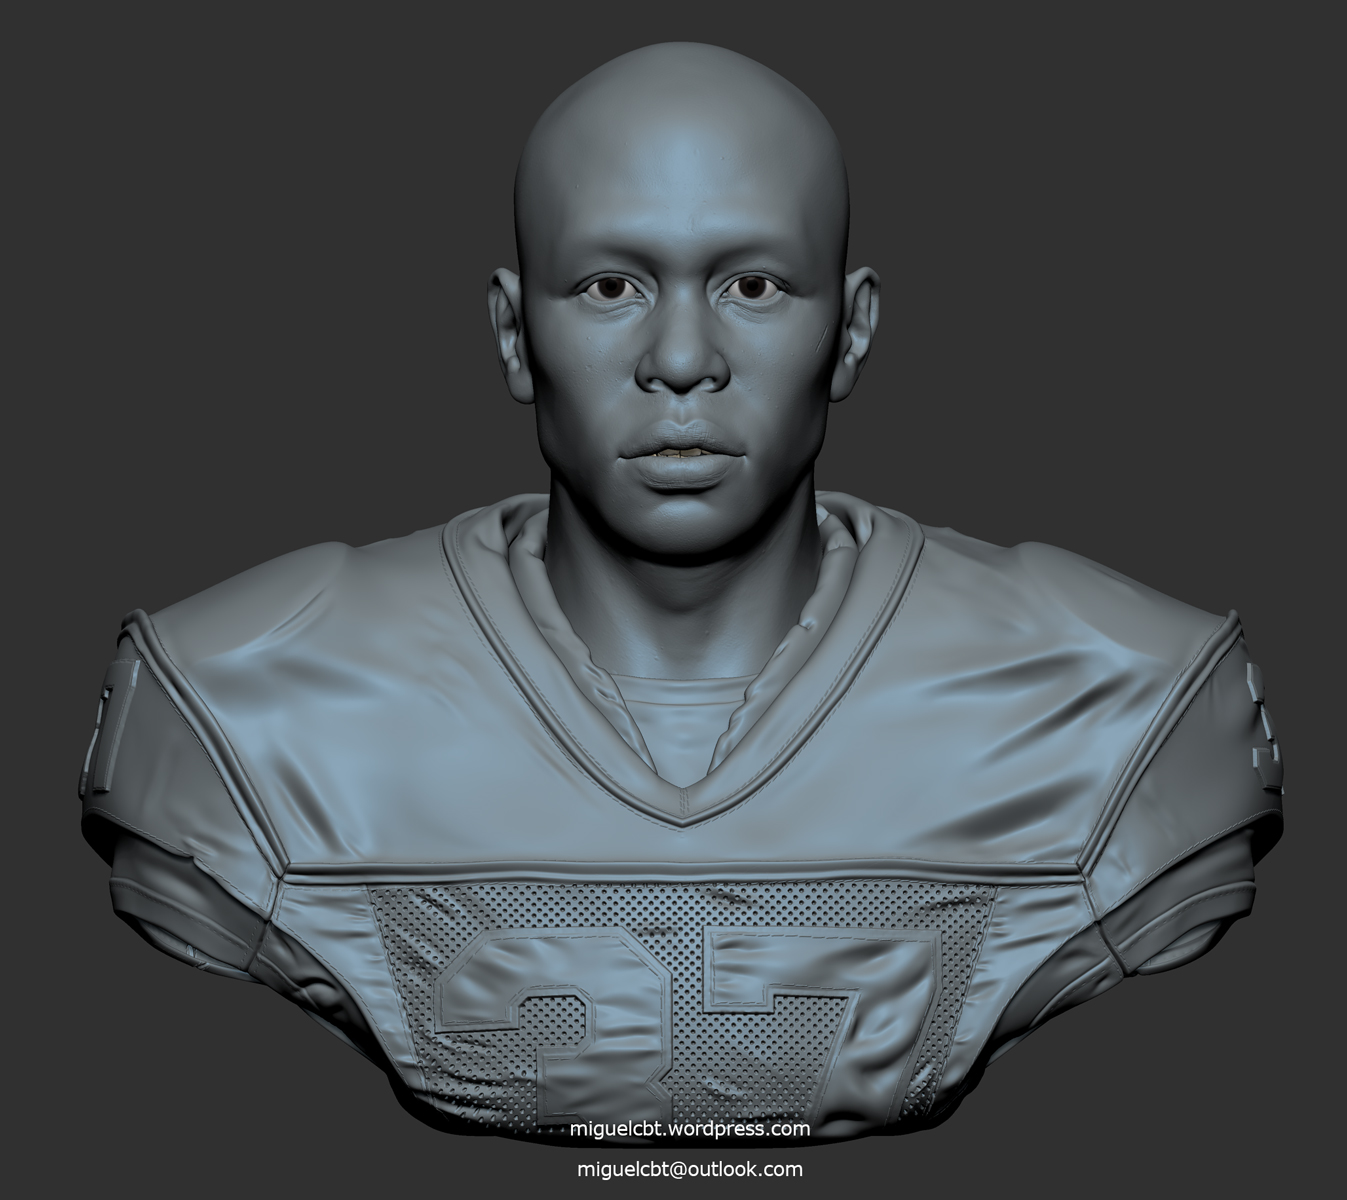 Football_Player_Sculpt-09.jpg